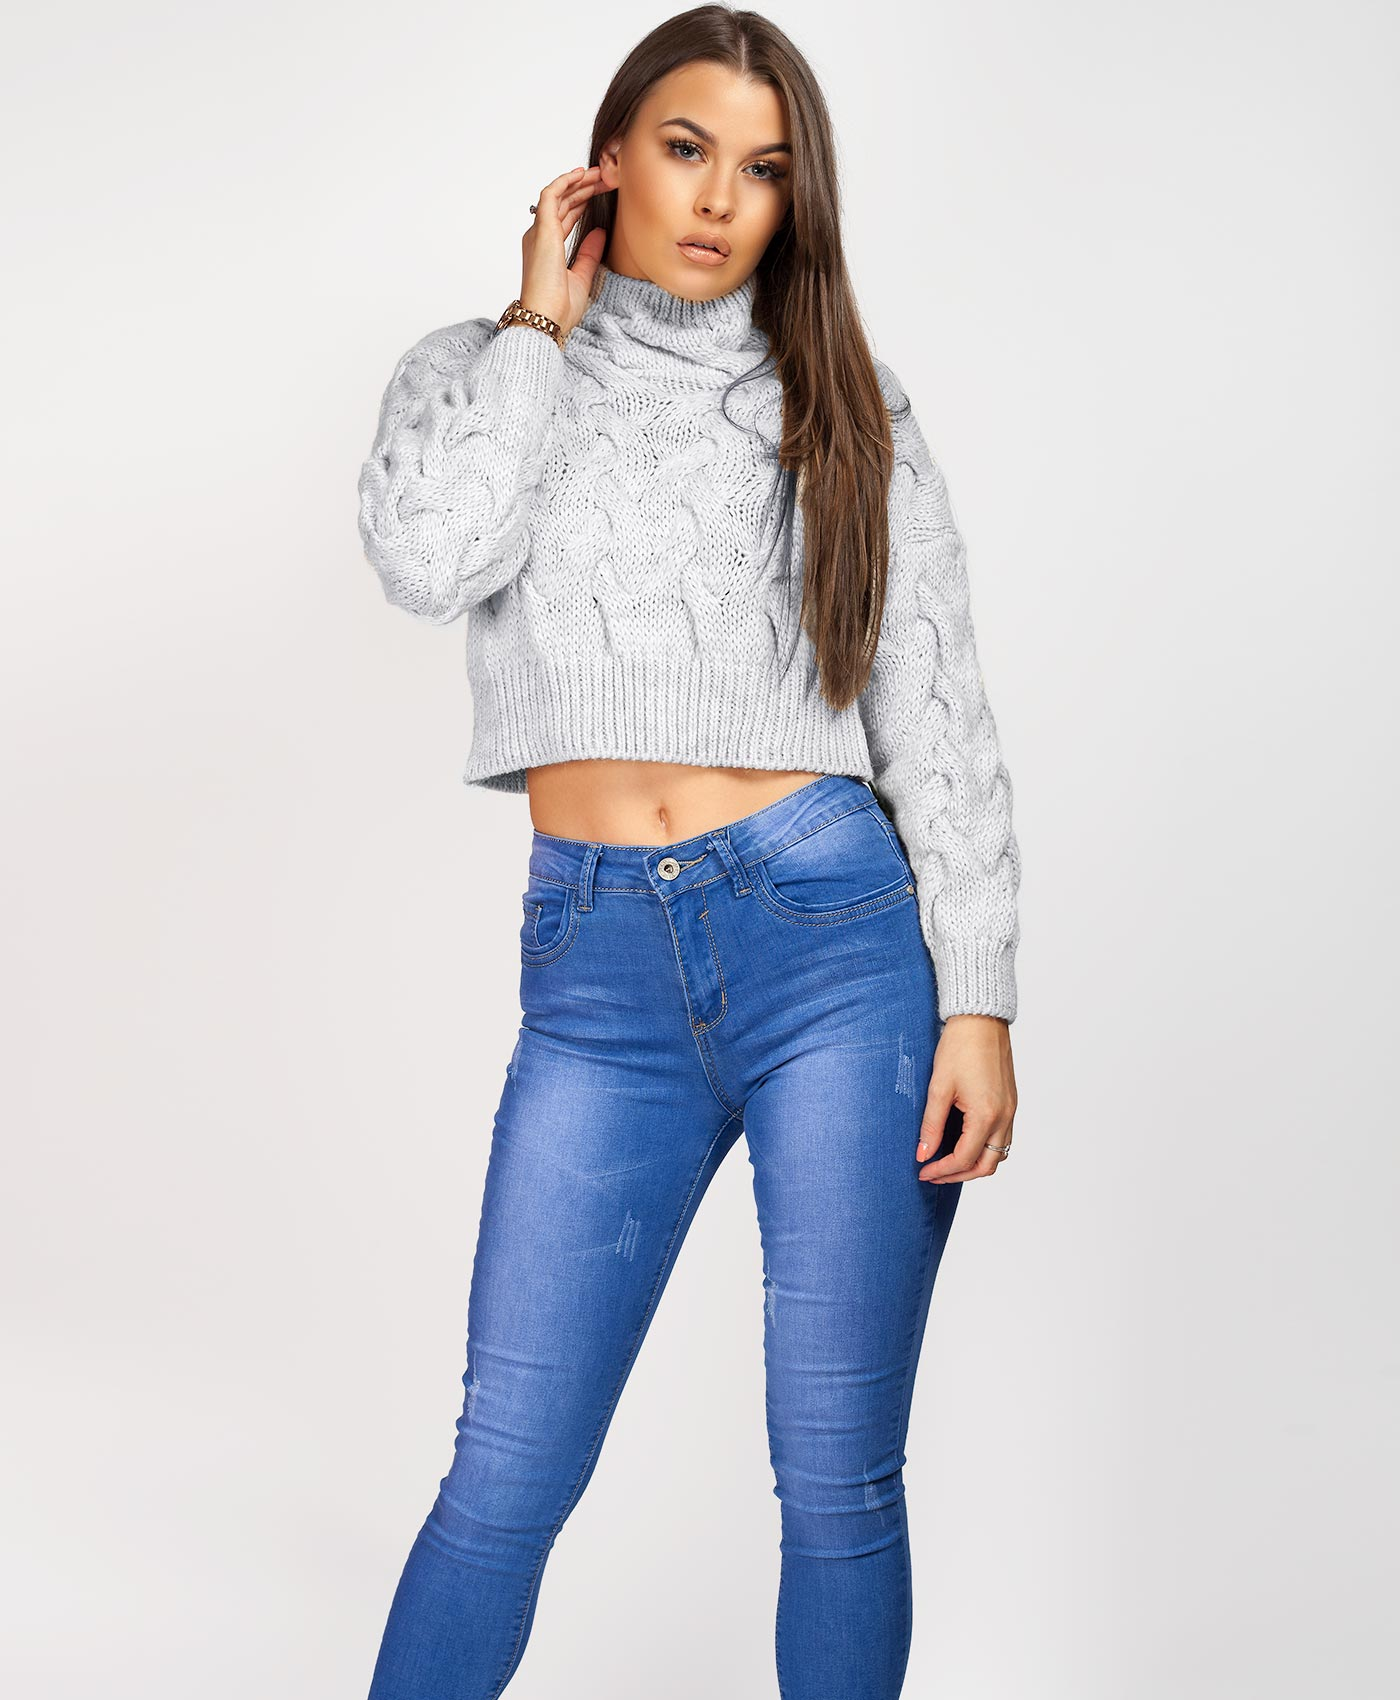 Womens-Ladies-Cable-Knitted-High-Neck-Cropped-Top-Pullover-Sweater-Chunky-Jumper thumbnail 30